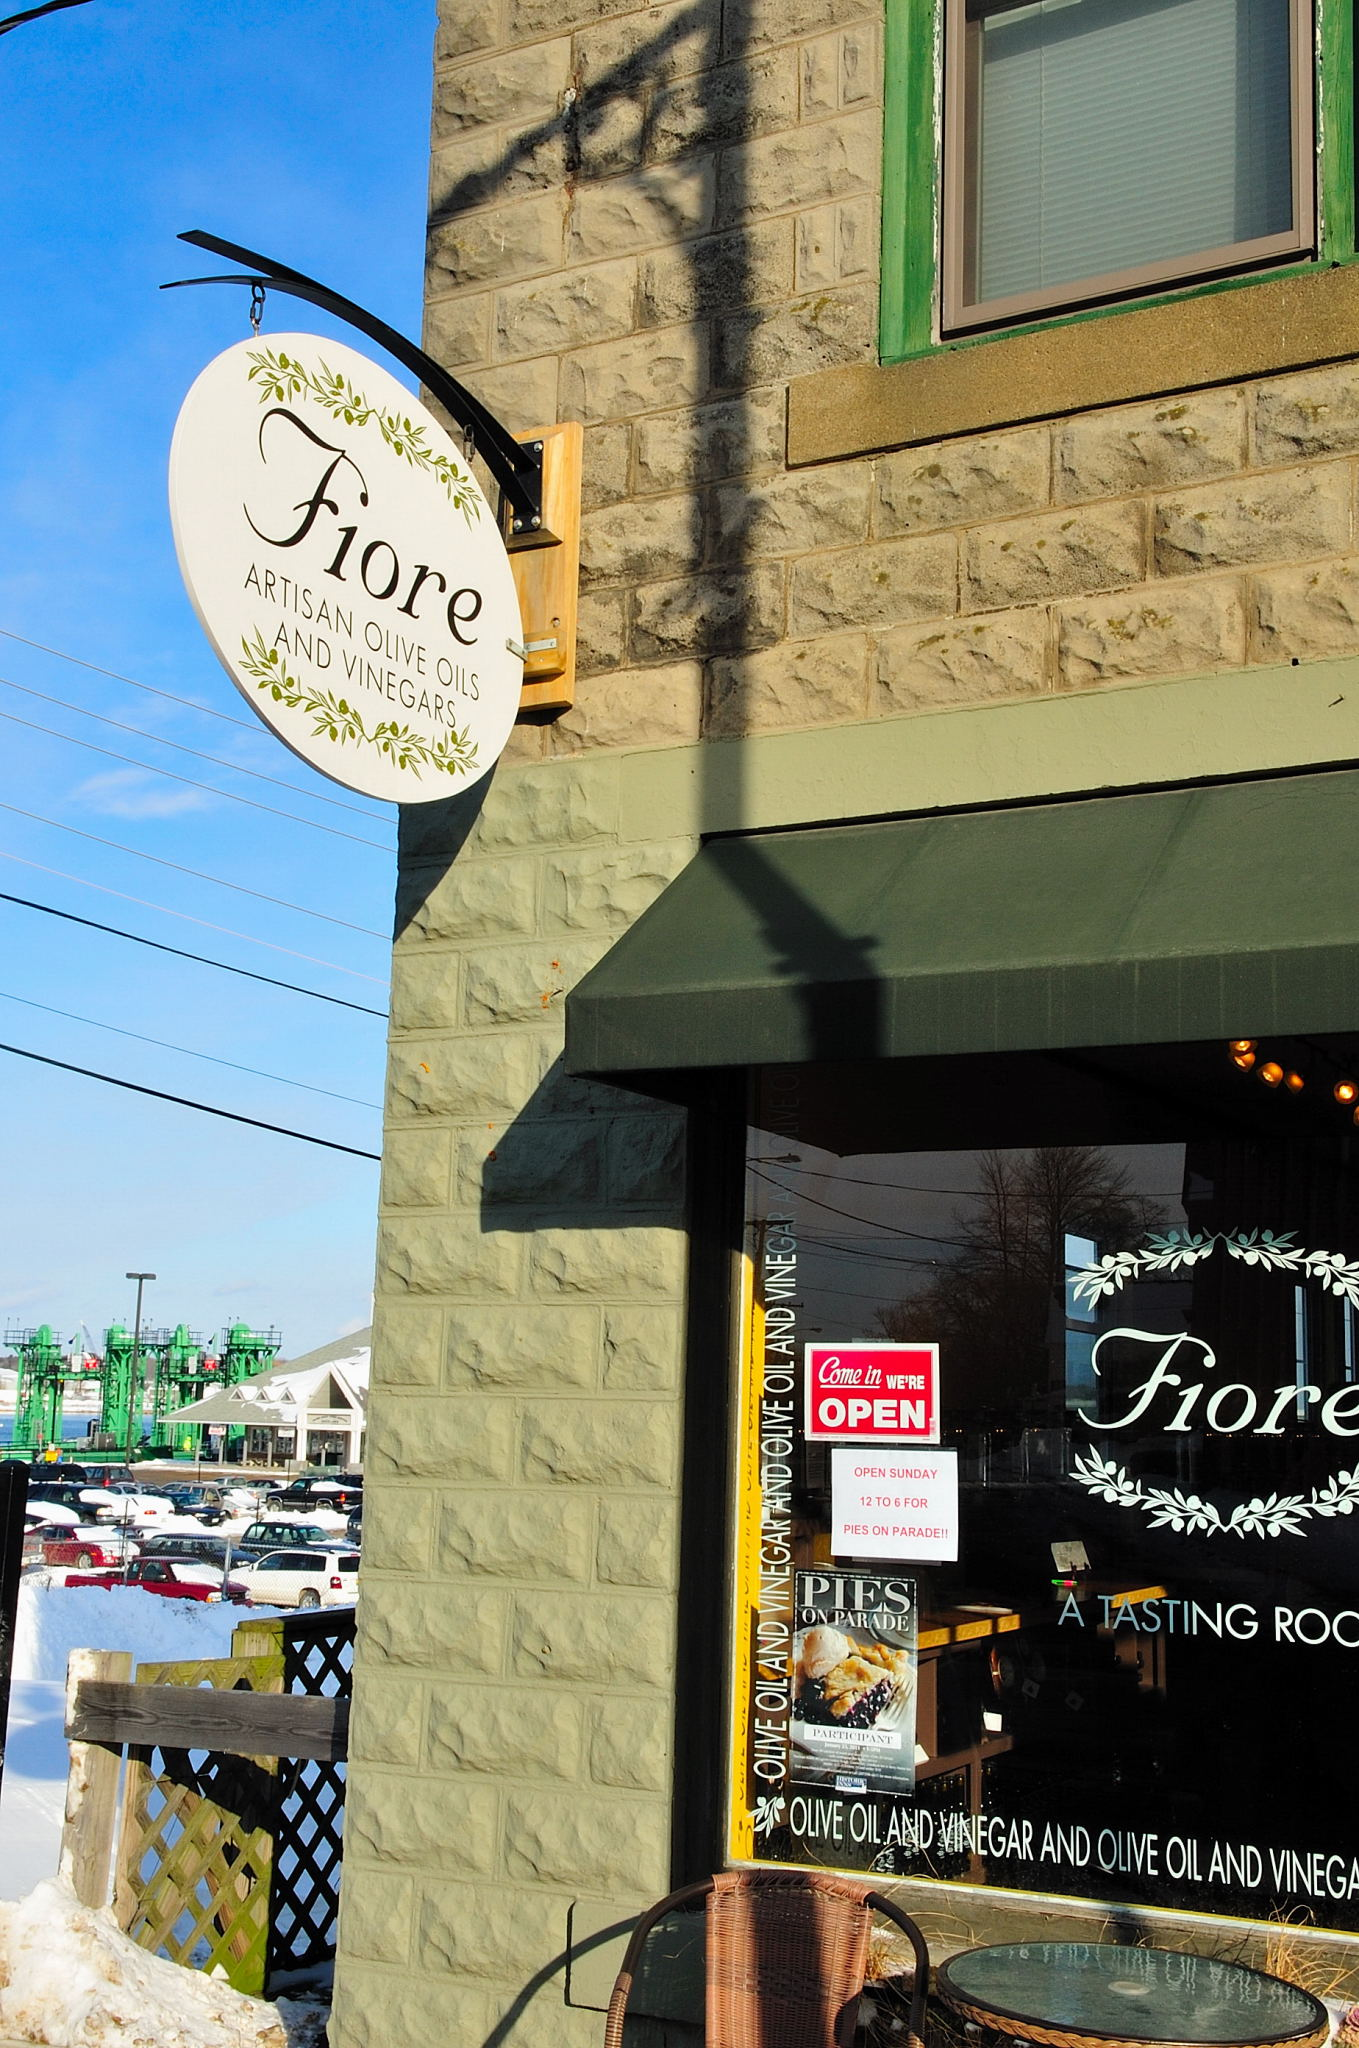 A visit to FIORE Artisan Olive Oils and Vinegars in Rockland, ME is one of the many stops you'll make during the Savor the Flavor tasting tour.